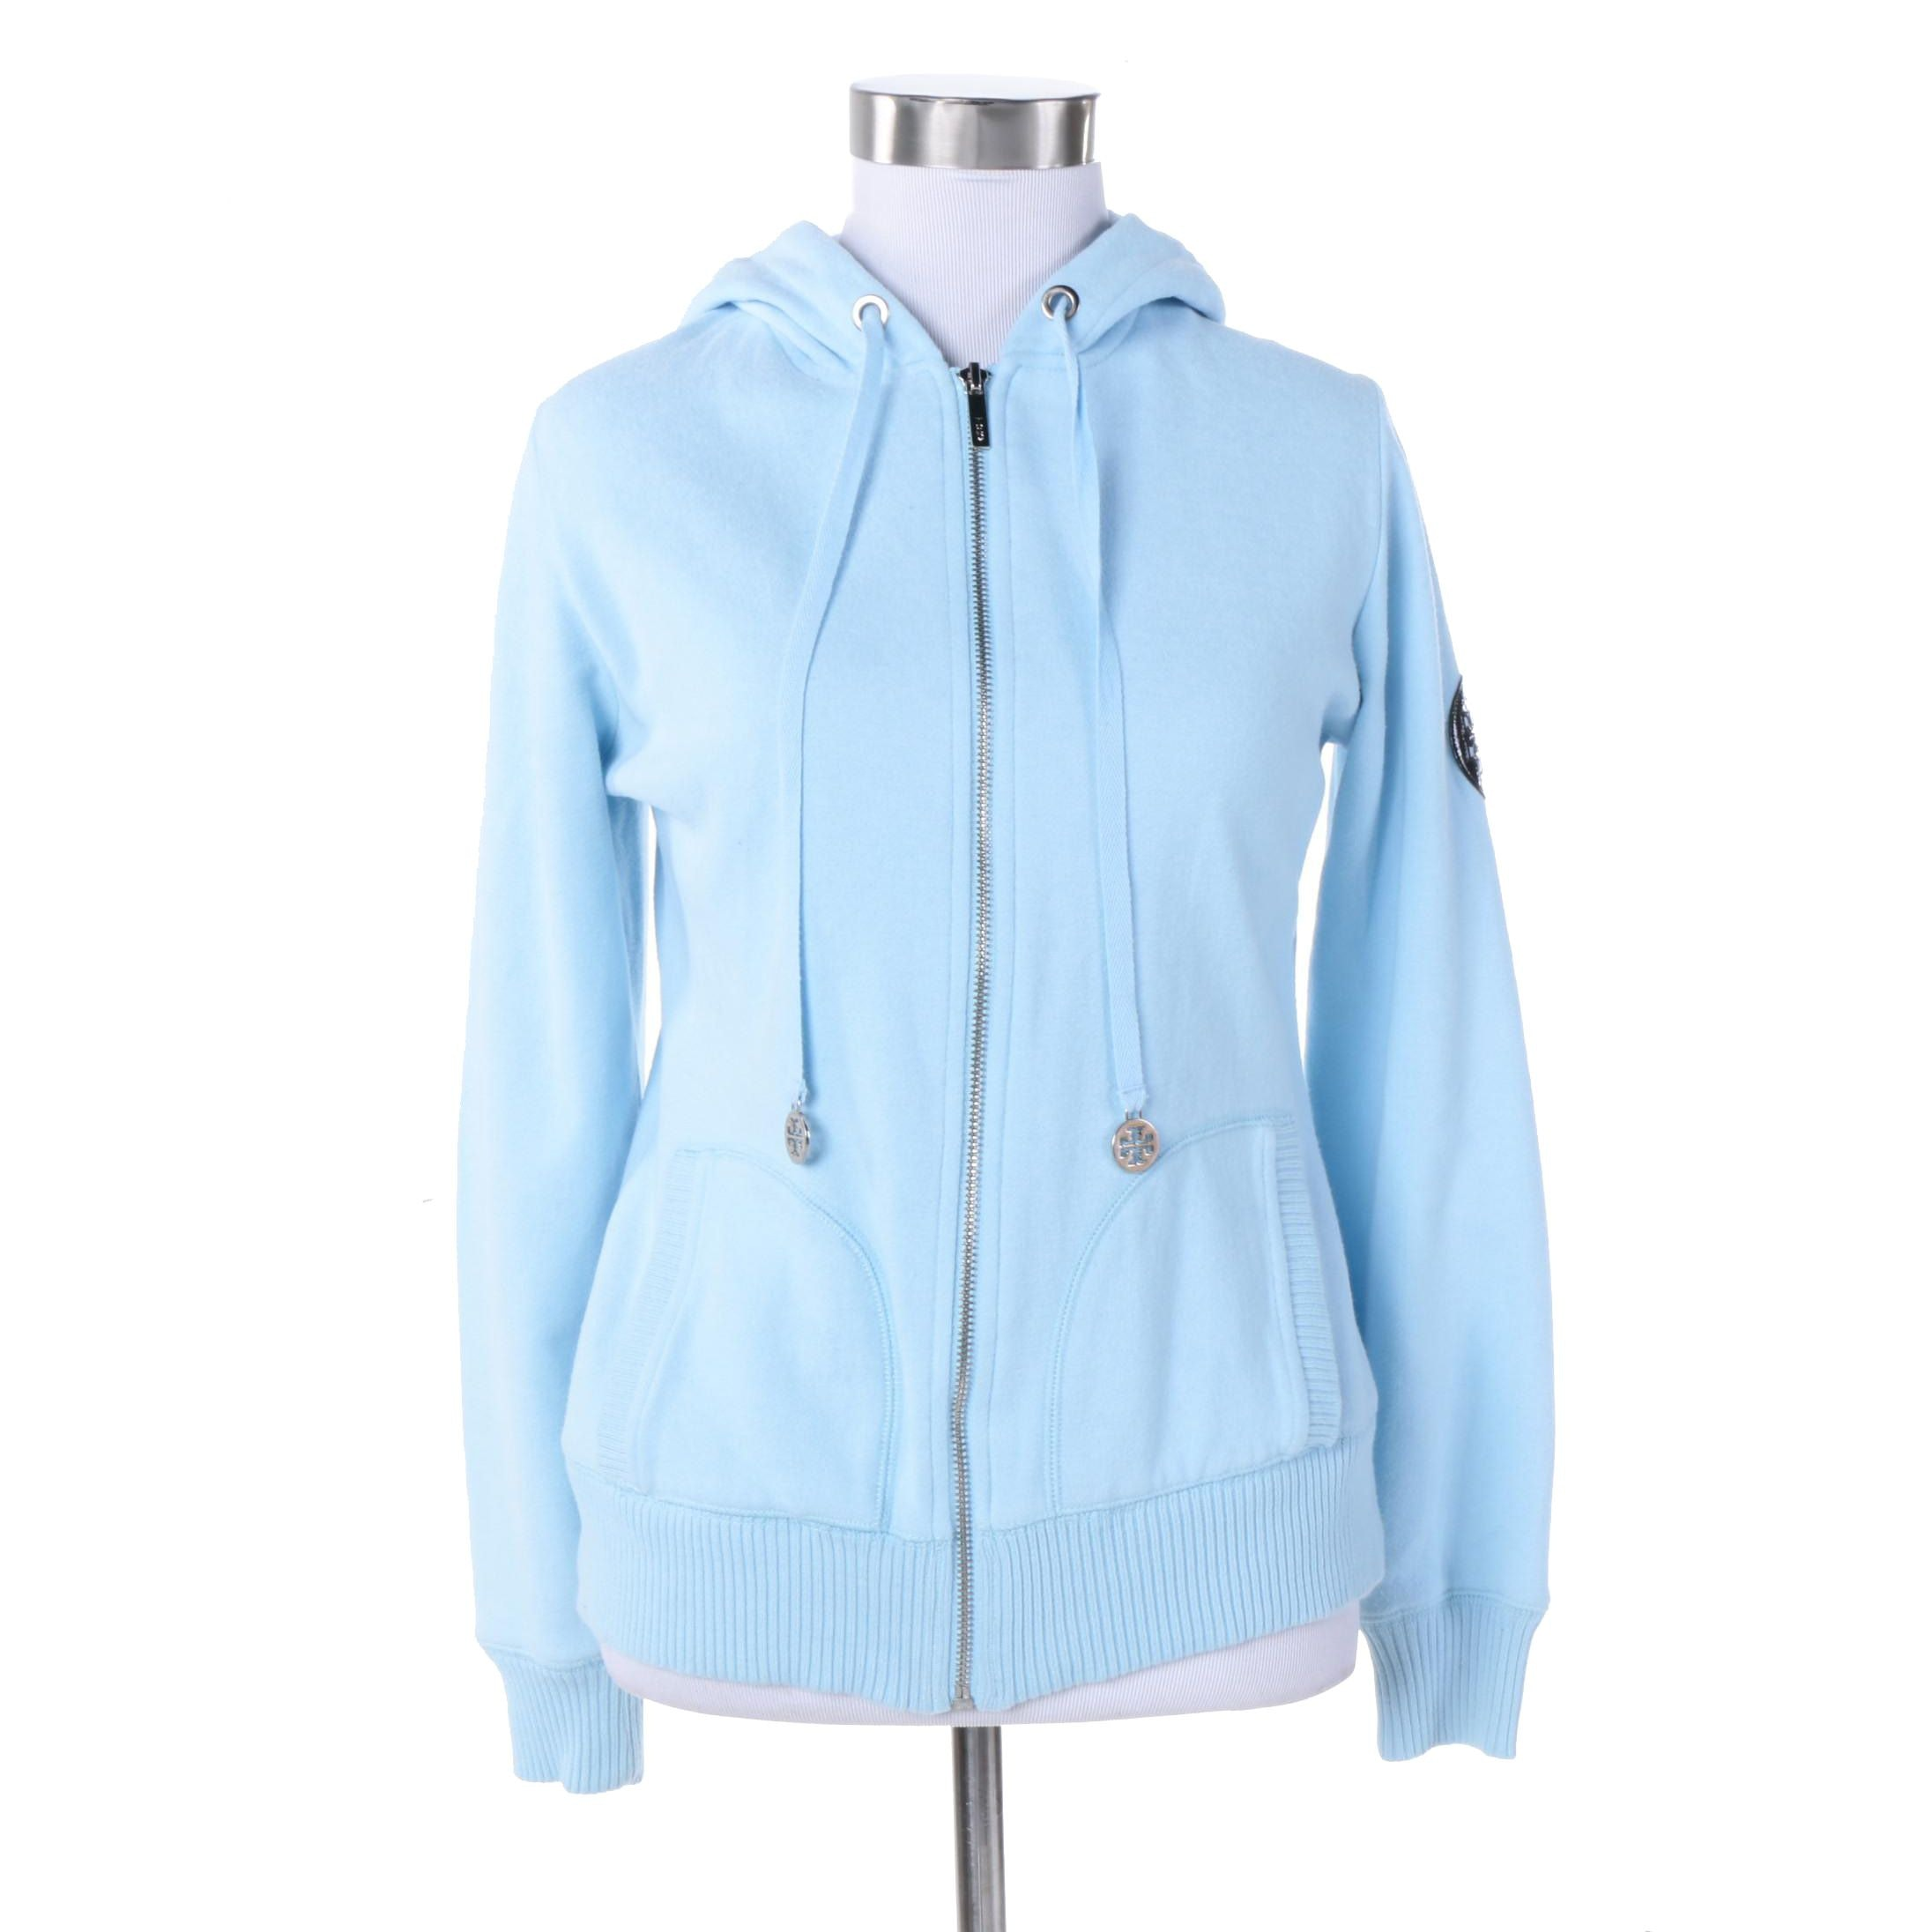 Tory Burch Zip-Up Cotton Blend Hoodie